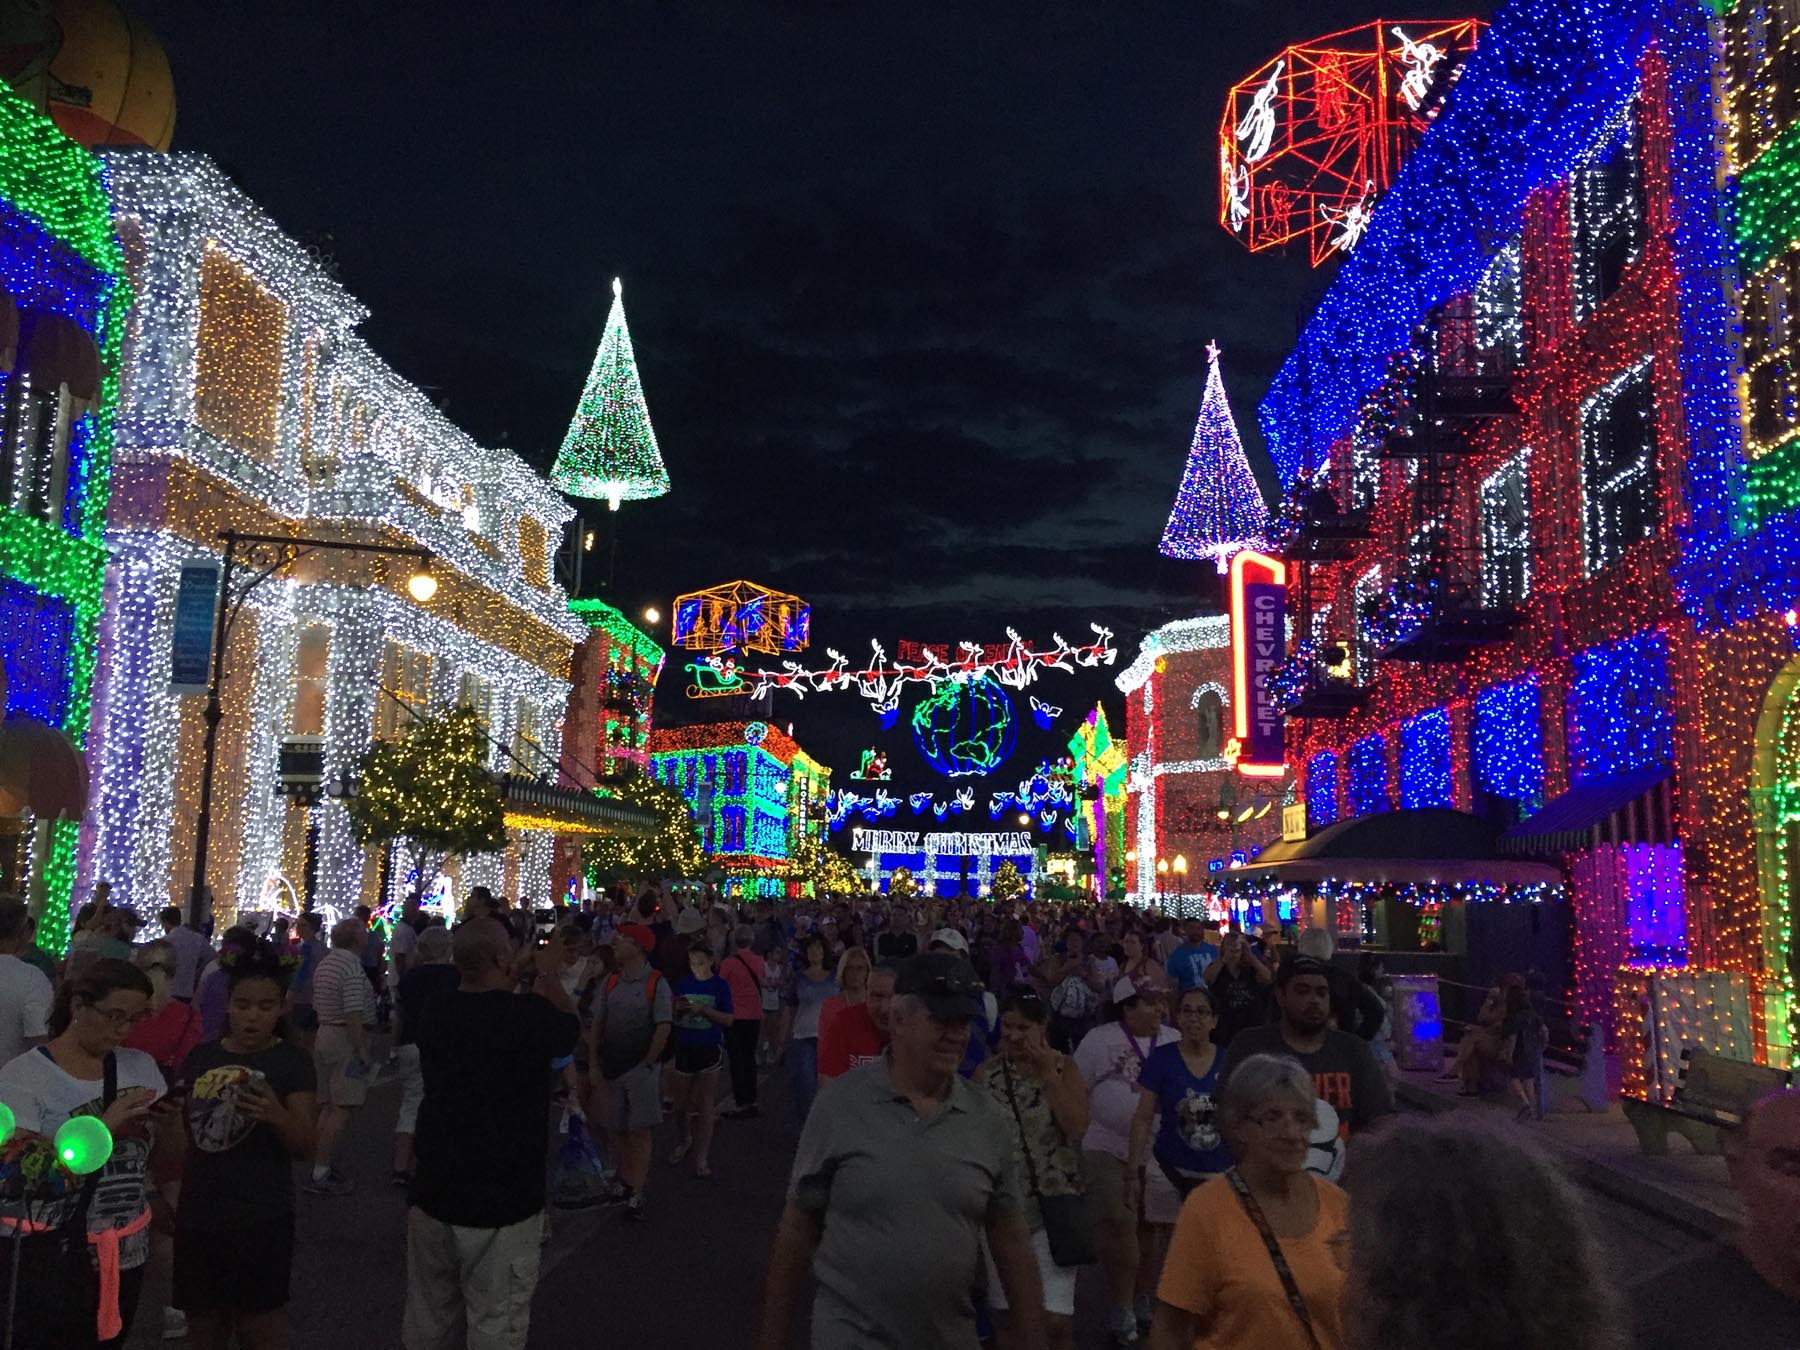 Image Todayu0027s Disney Photo: Osborne Lights Up For U002715 In Final Year